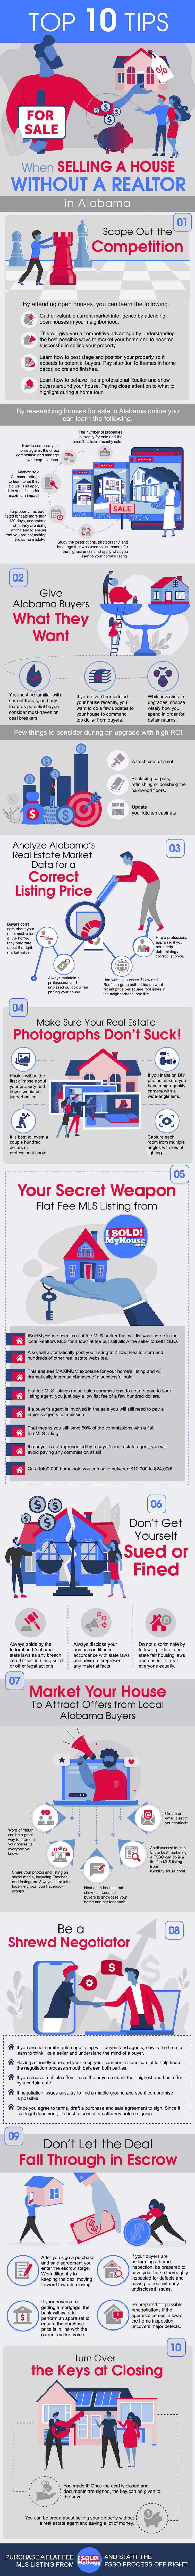 infographic of the 10 steps to sell a house in alabama without an agent